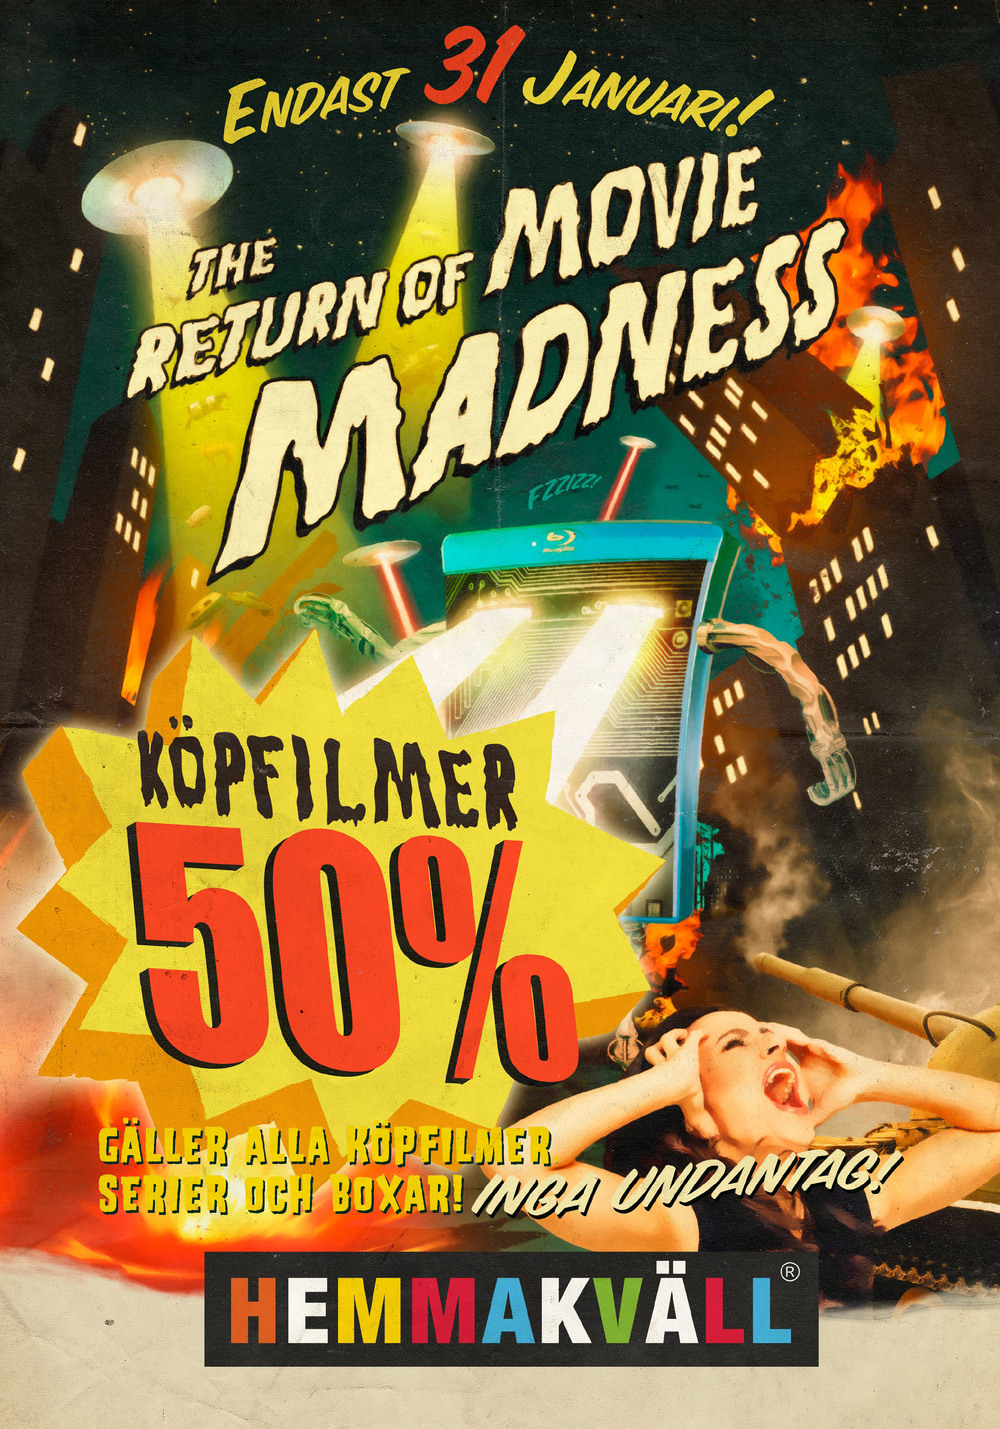 The Return of Movie Madness Artwork Poster